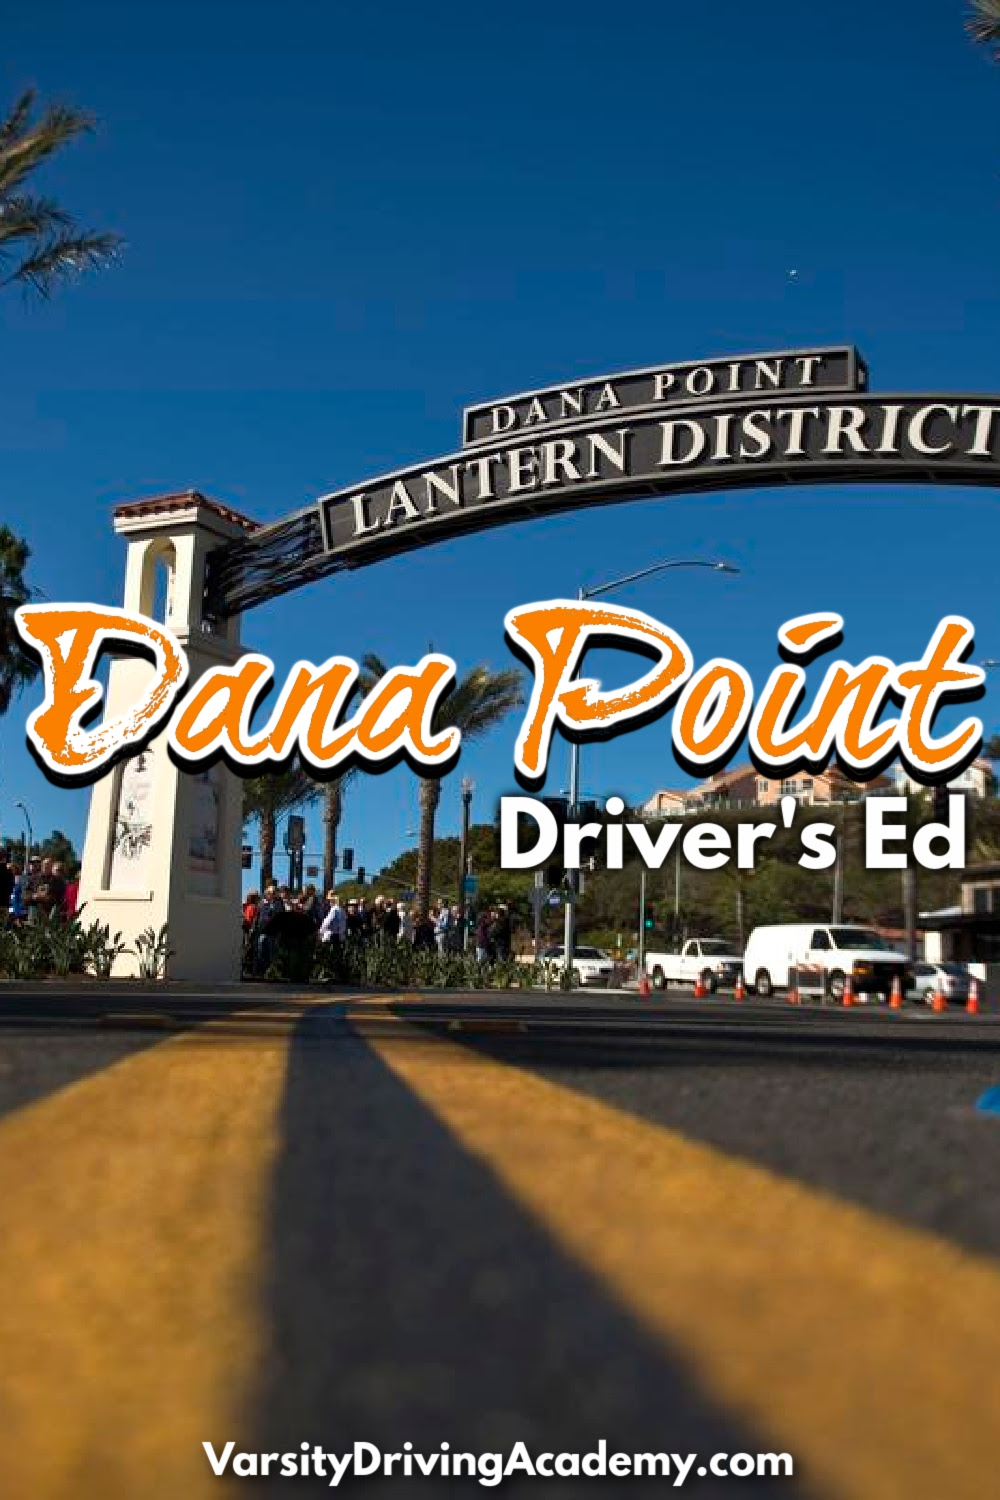 Learn how to drive with the best Dana Point drivers ed at Varsity Driving Academy where safety is the top priority.